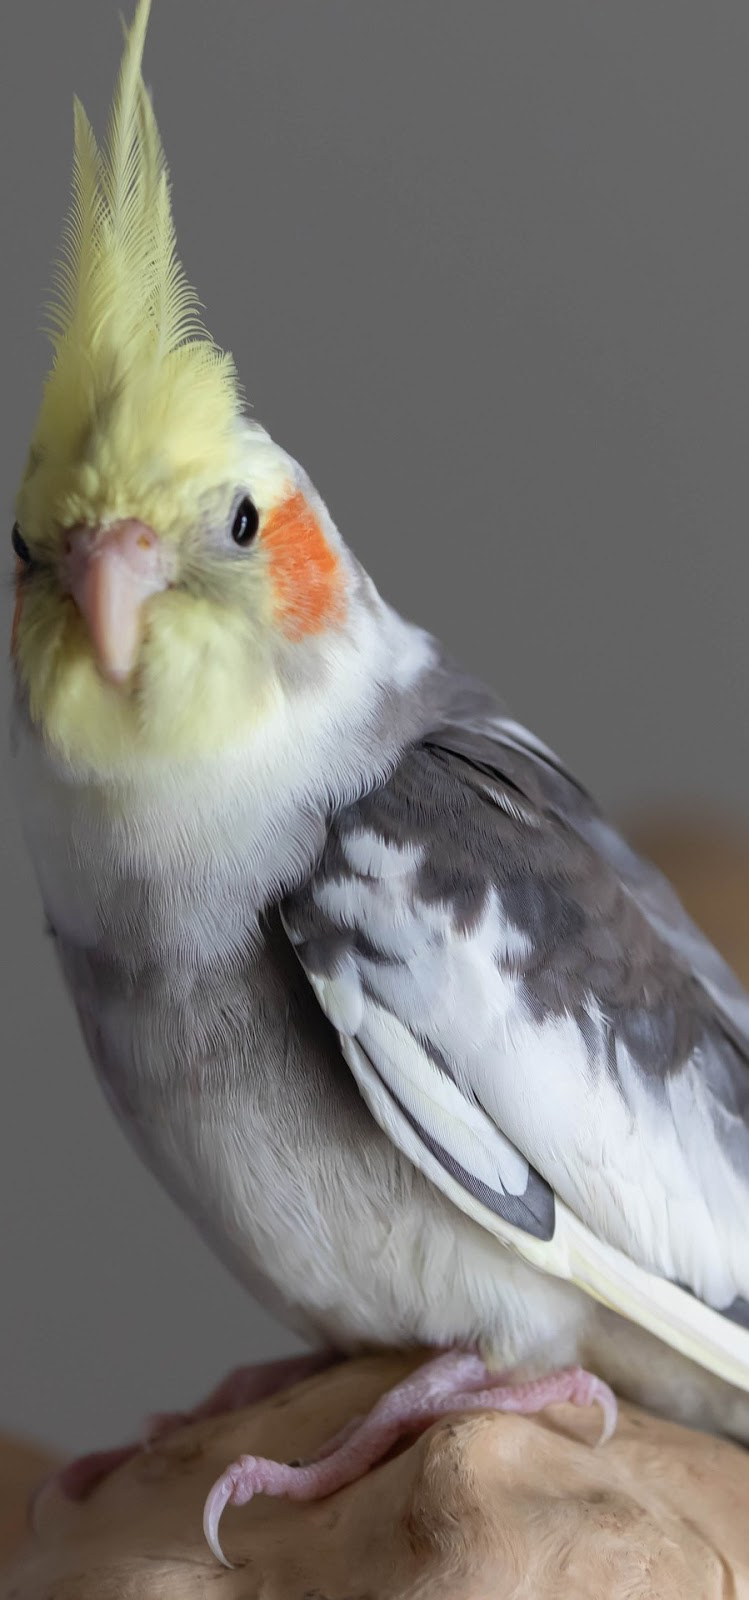 A portrait of a cockatiel .